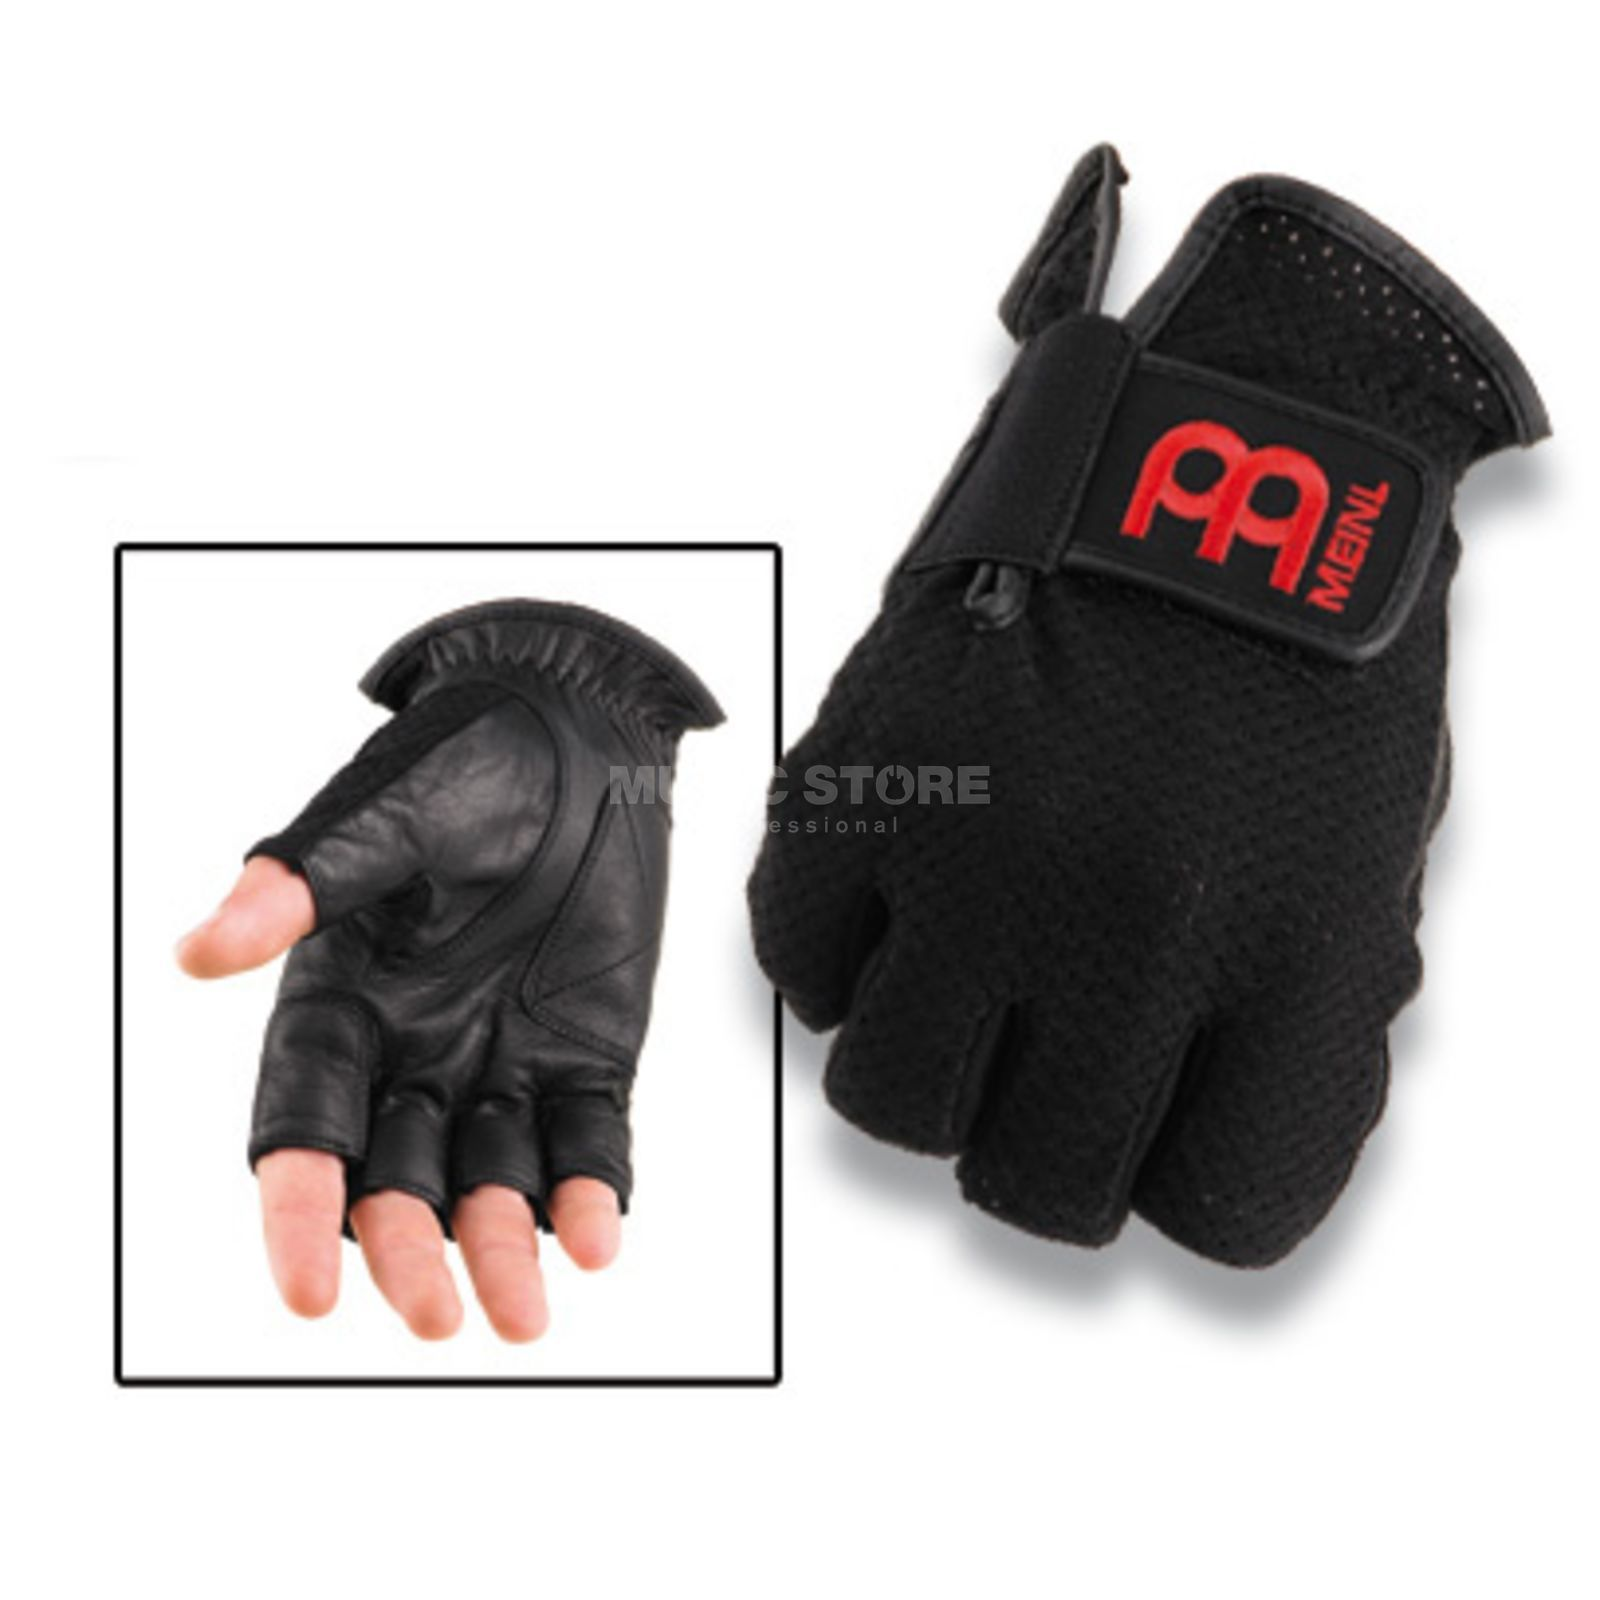 Meinl Drummer Gloves MDGFL-L, large, w/o fingers Product Image